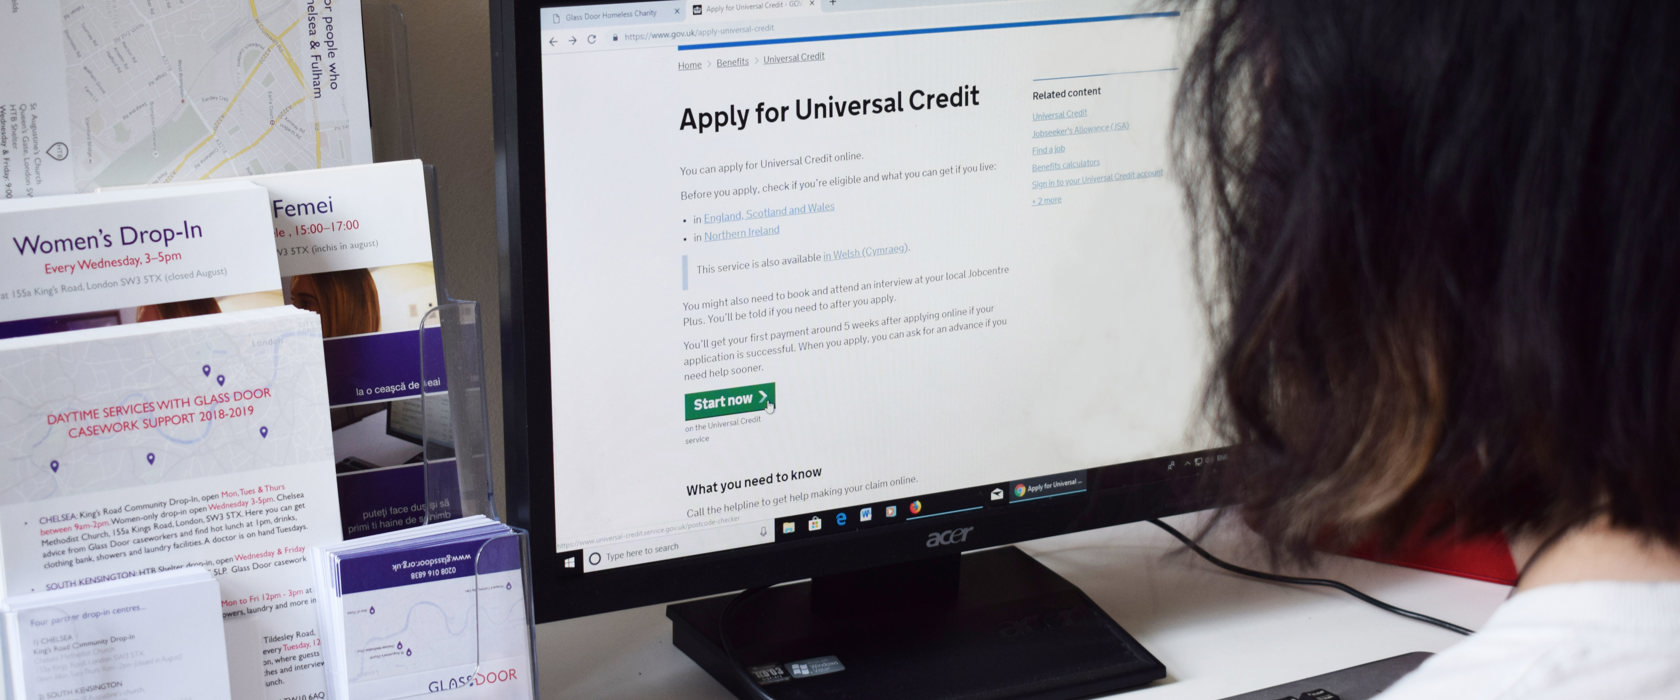 Universal credit hurts most vulnerable